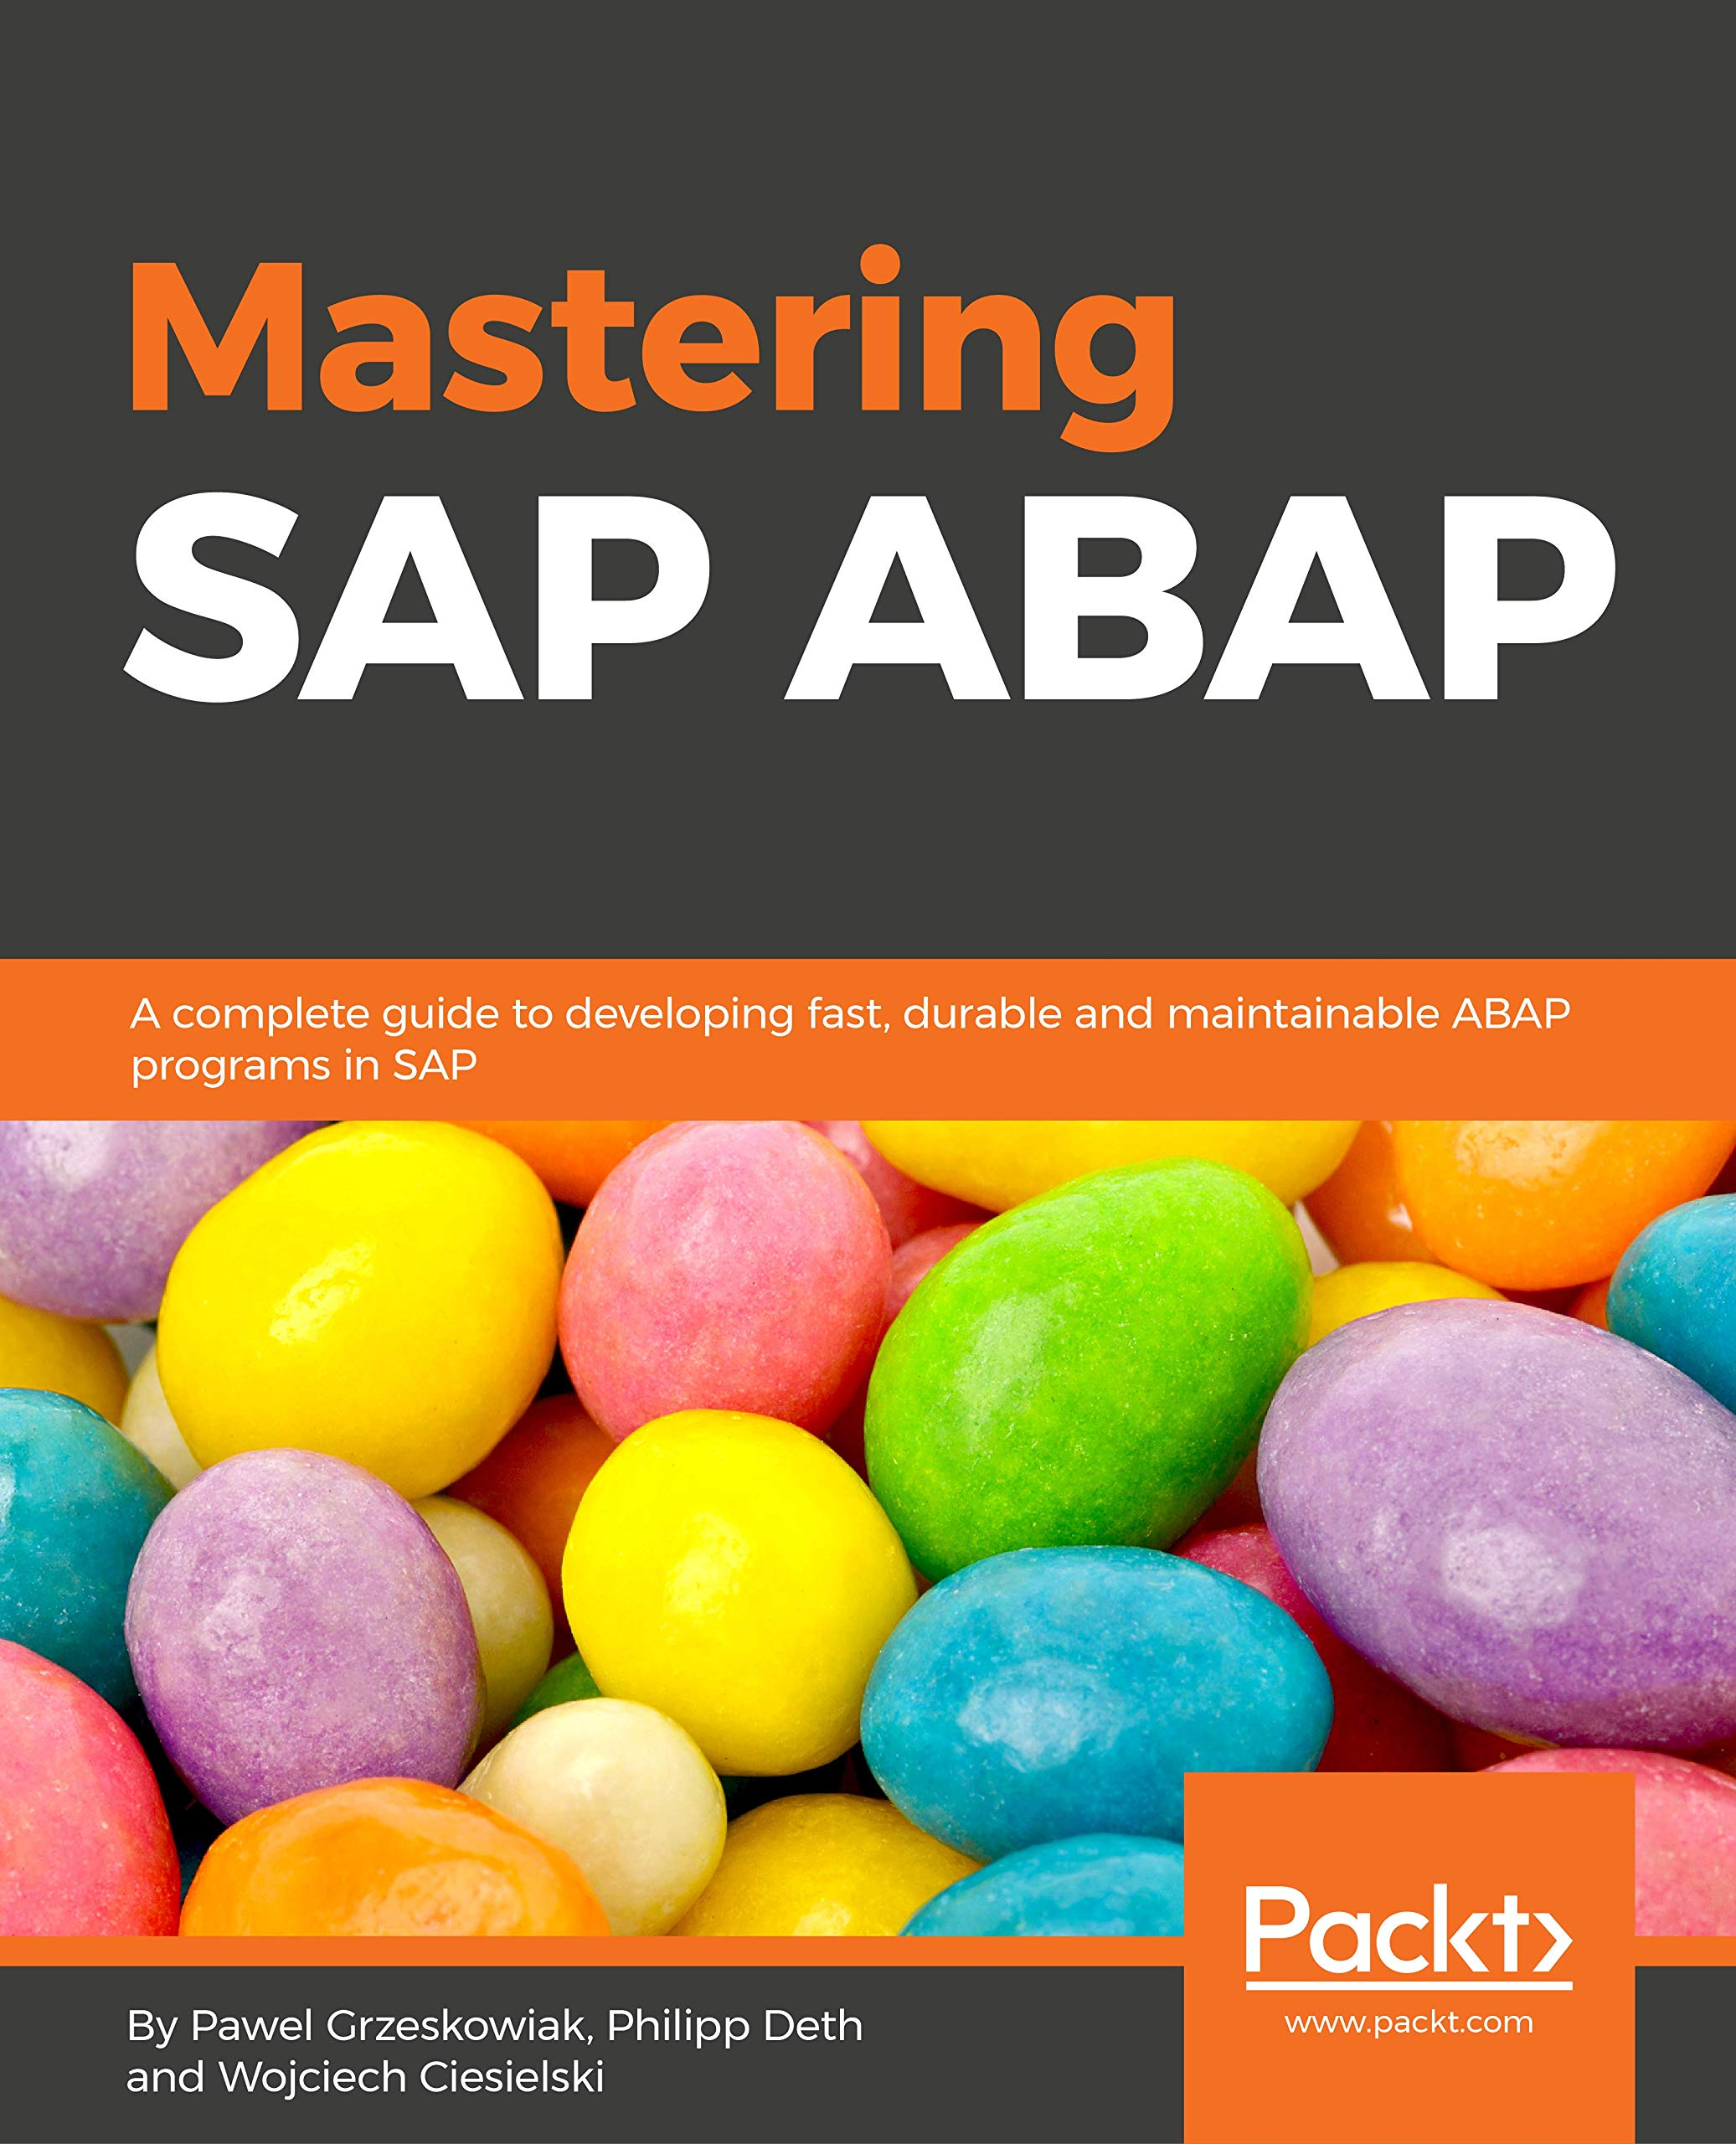 Mastering SAP ABAP: A complete guide to developing fast, durable and maintainable ABAP programs in SAP: Amazon.es: Pawel Grzeskowiak, Philipp Deth, ...